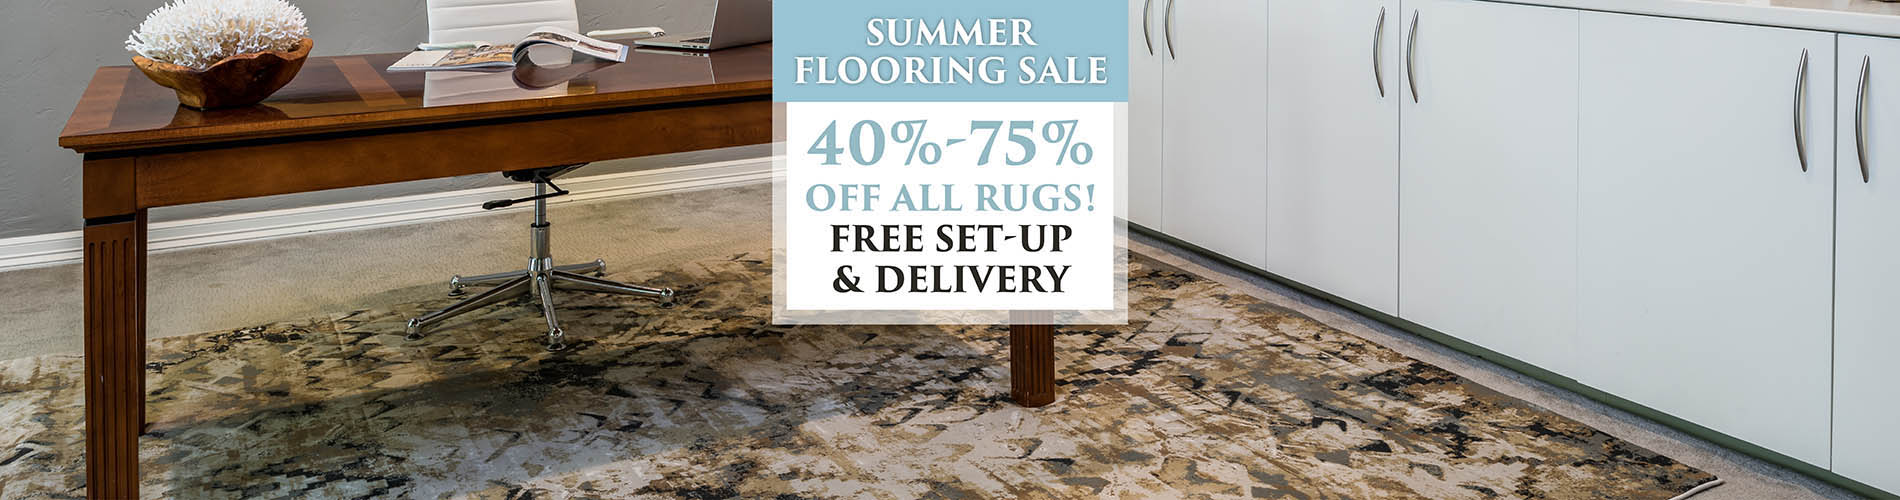 40-75% off all area rugs!  Free set-up and delivery available!